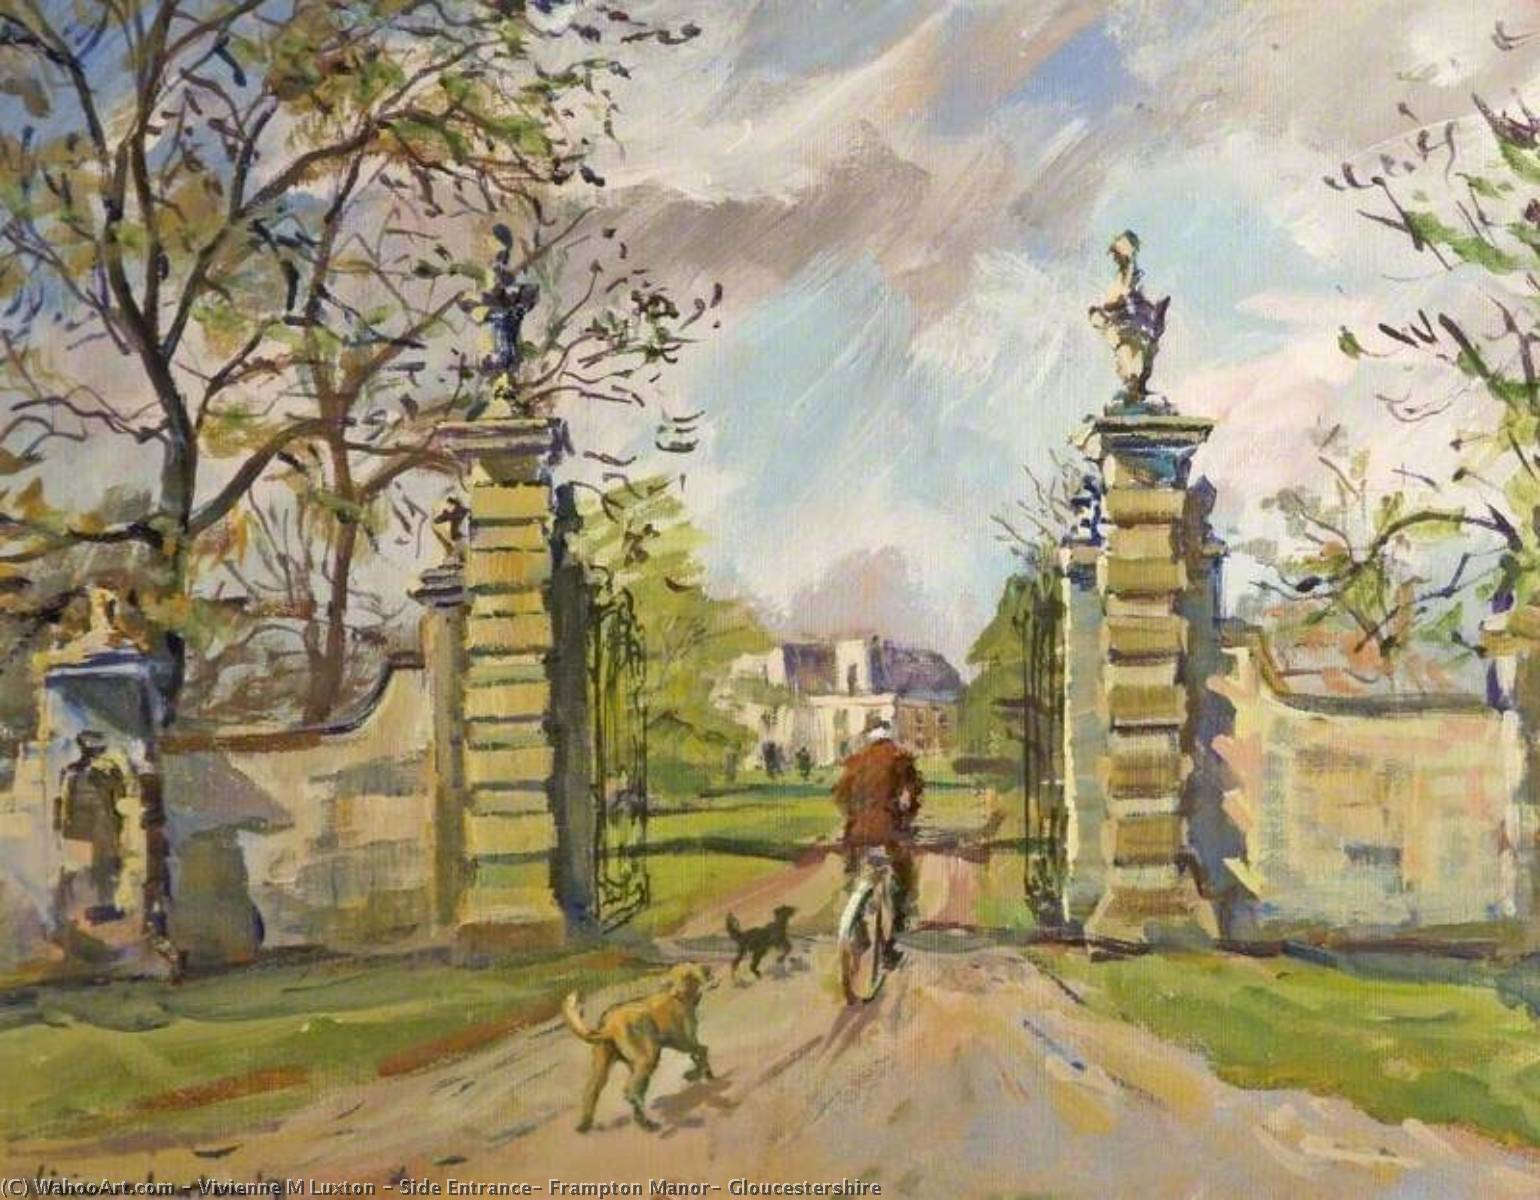 Side Entrance, Frampton Manor, Gloucestershire, 1991 by Vivienne M Luxton | Museum Quality Reproductions | WahooArt.com